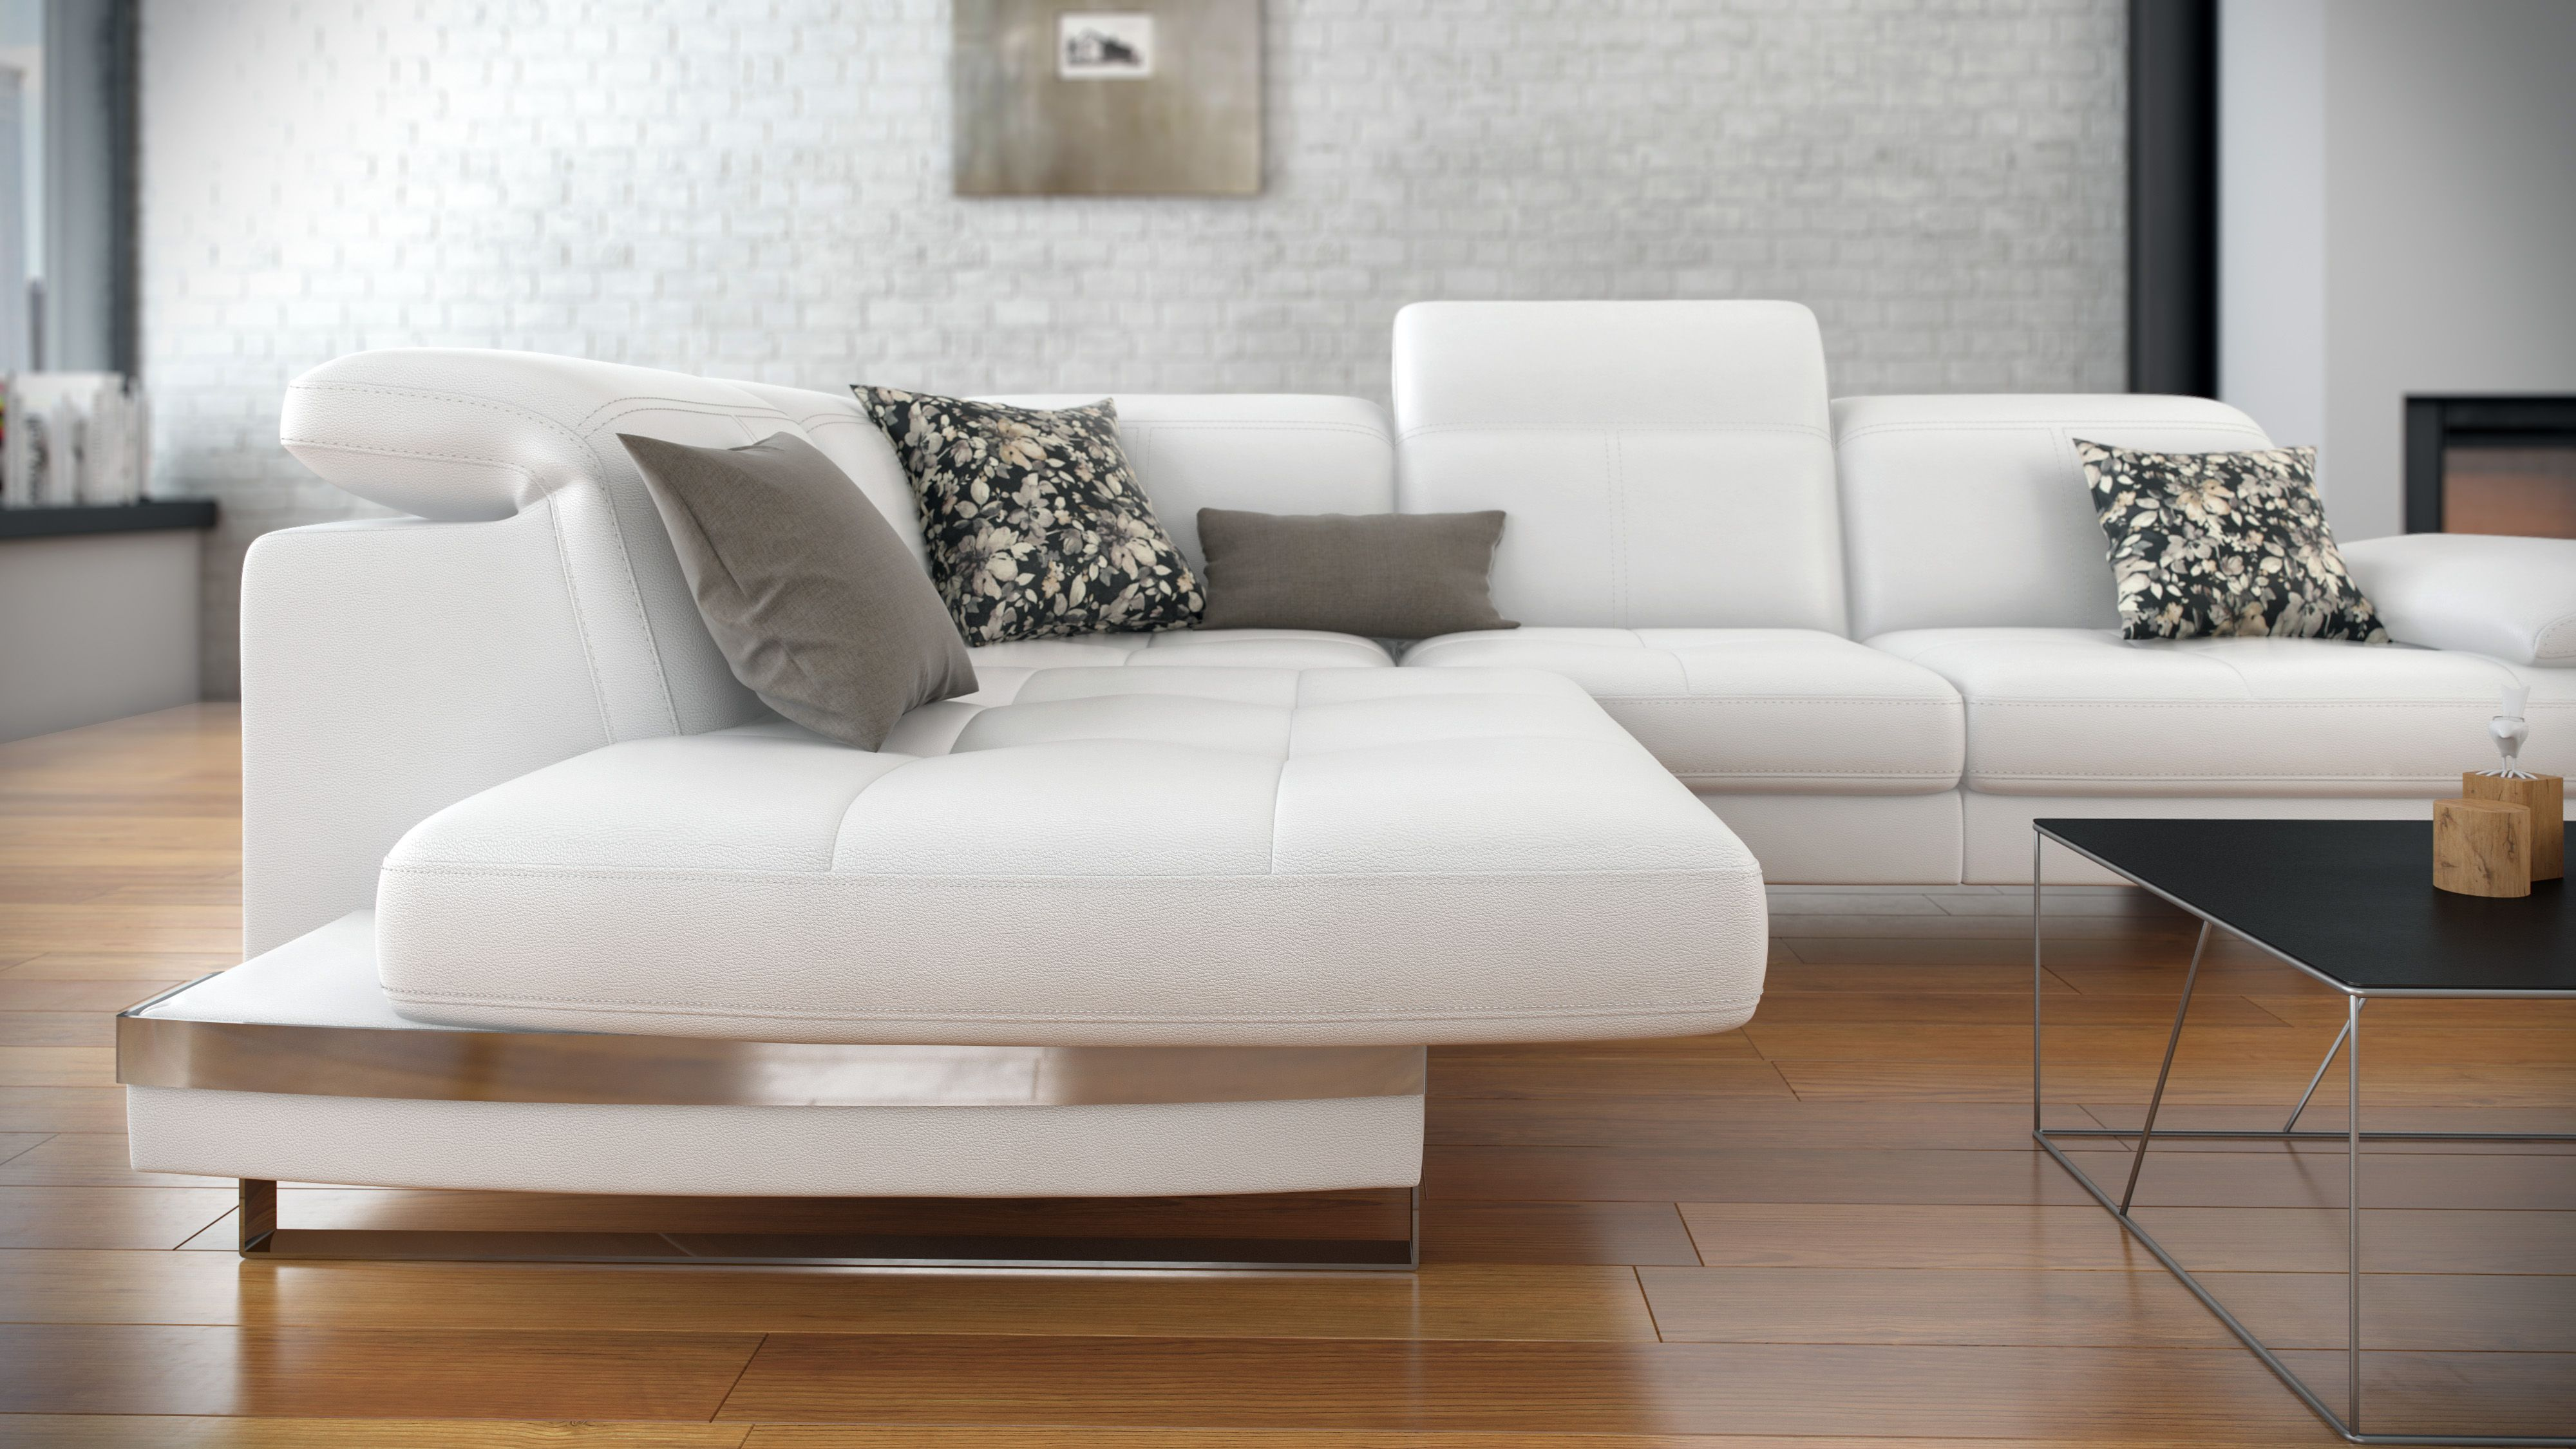 fering form and function Antigua Sofa from ROM